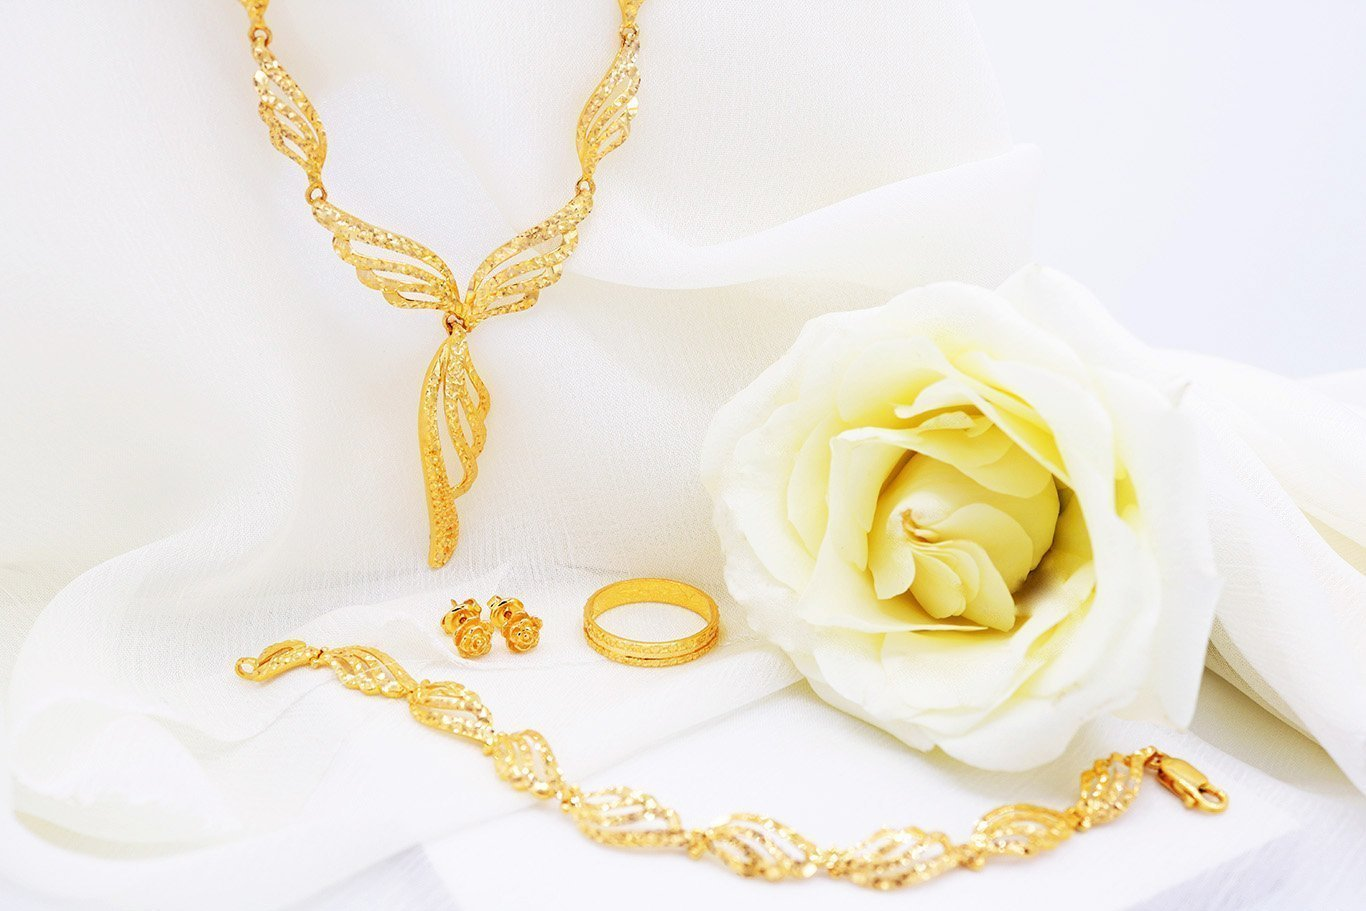 Quality 916 Gold Si Dian Jin set from Orient Jewellers Singapore